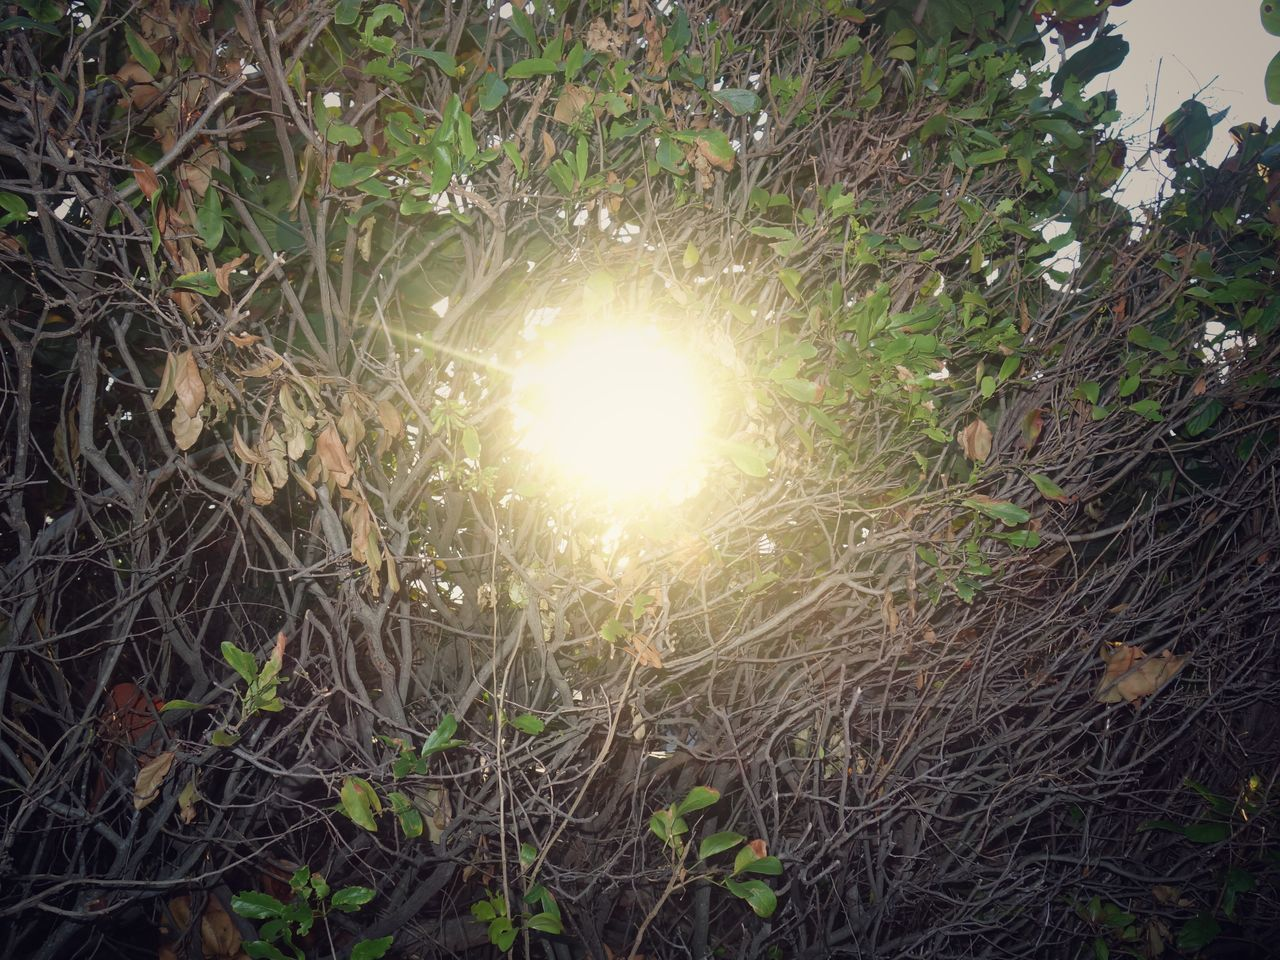 sun, outdoors, lens flare, no people, growth, nature, plant, sunlight, tree, beauty in nature, day, branch, grass, close-up, freshness